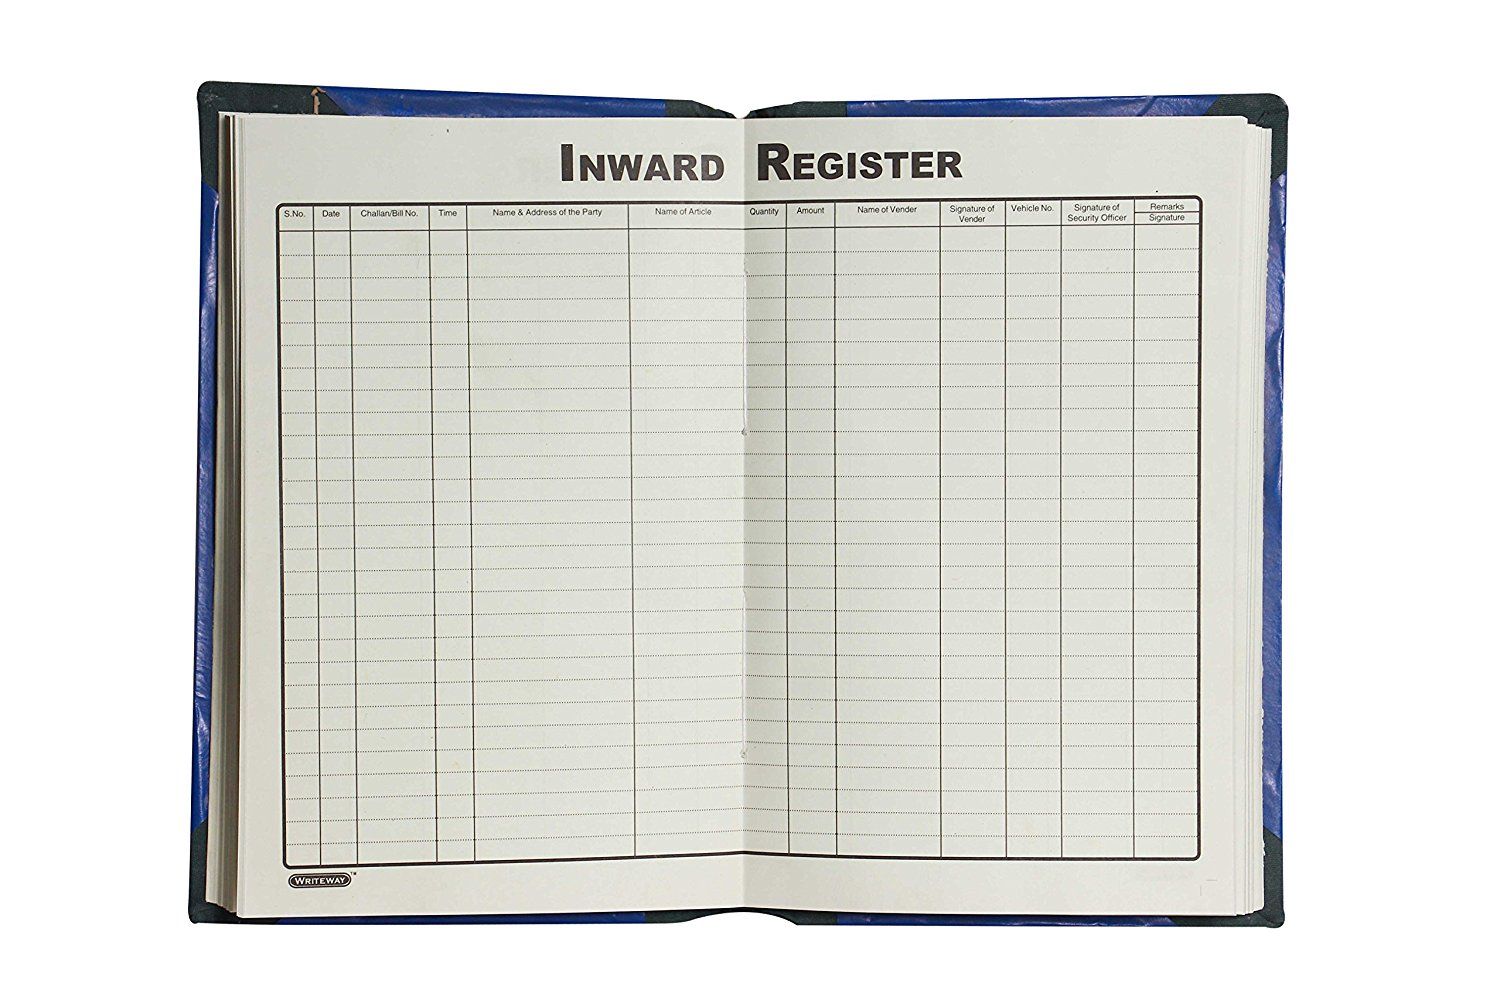 Inward Register, Rexine Binding, 384 Pages 8 Qr